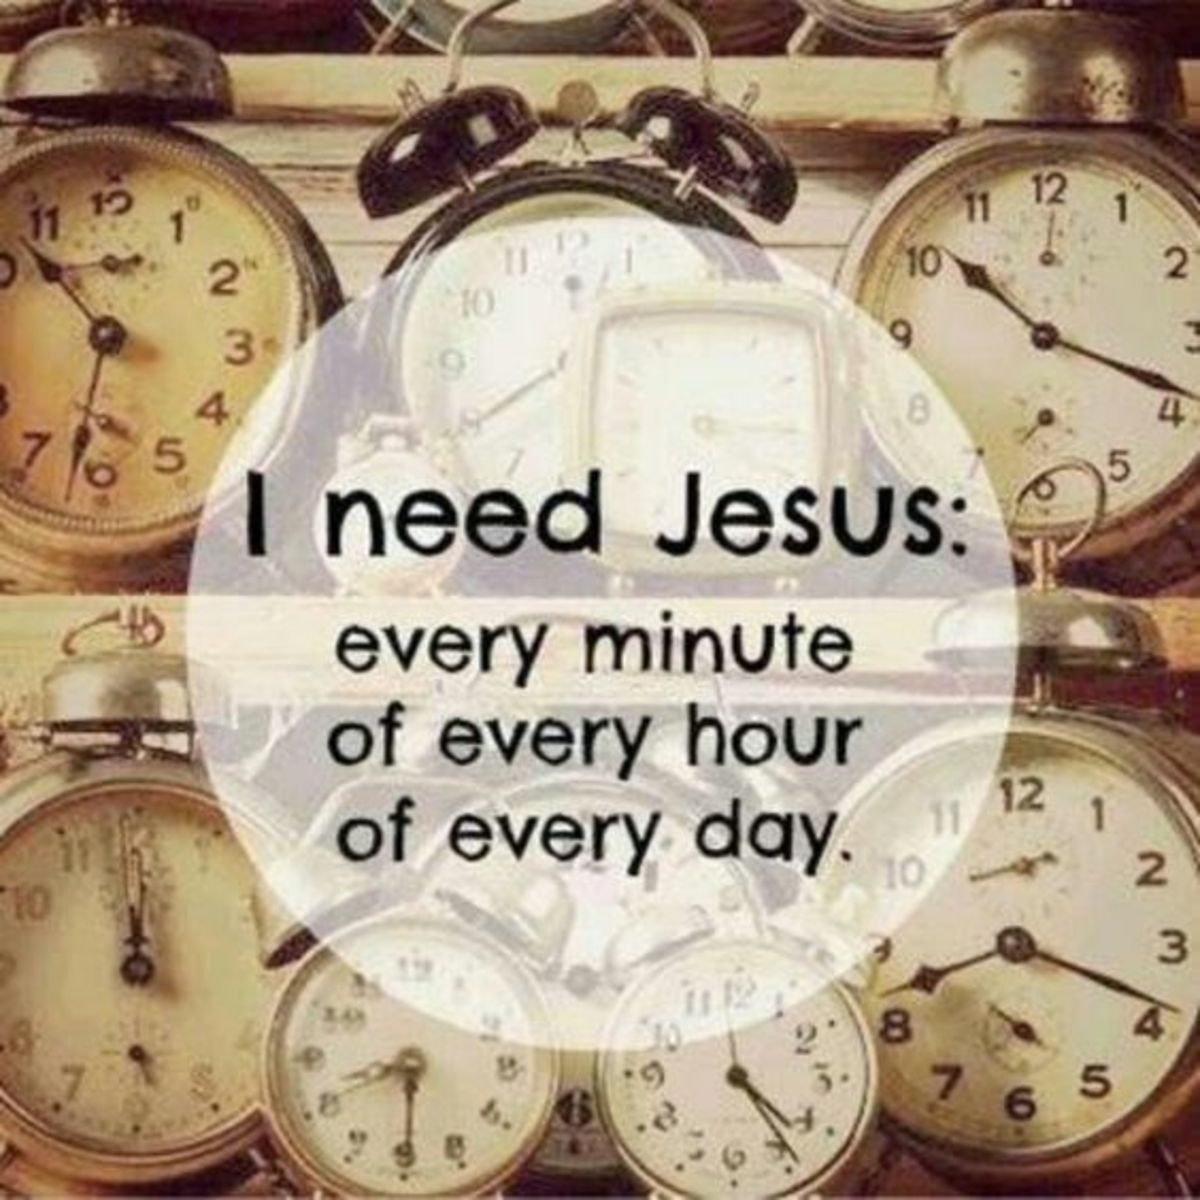 httphubpagescomhubjesus-i-need-you-every-hour-of-every-day